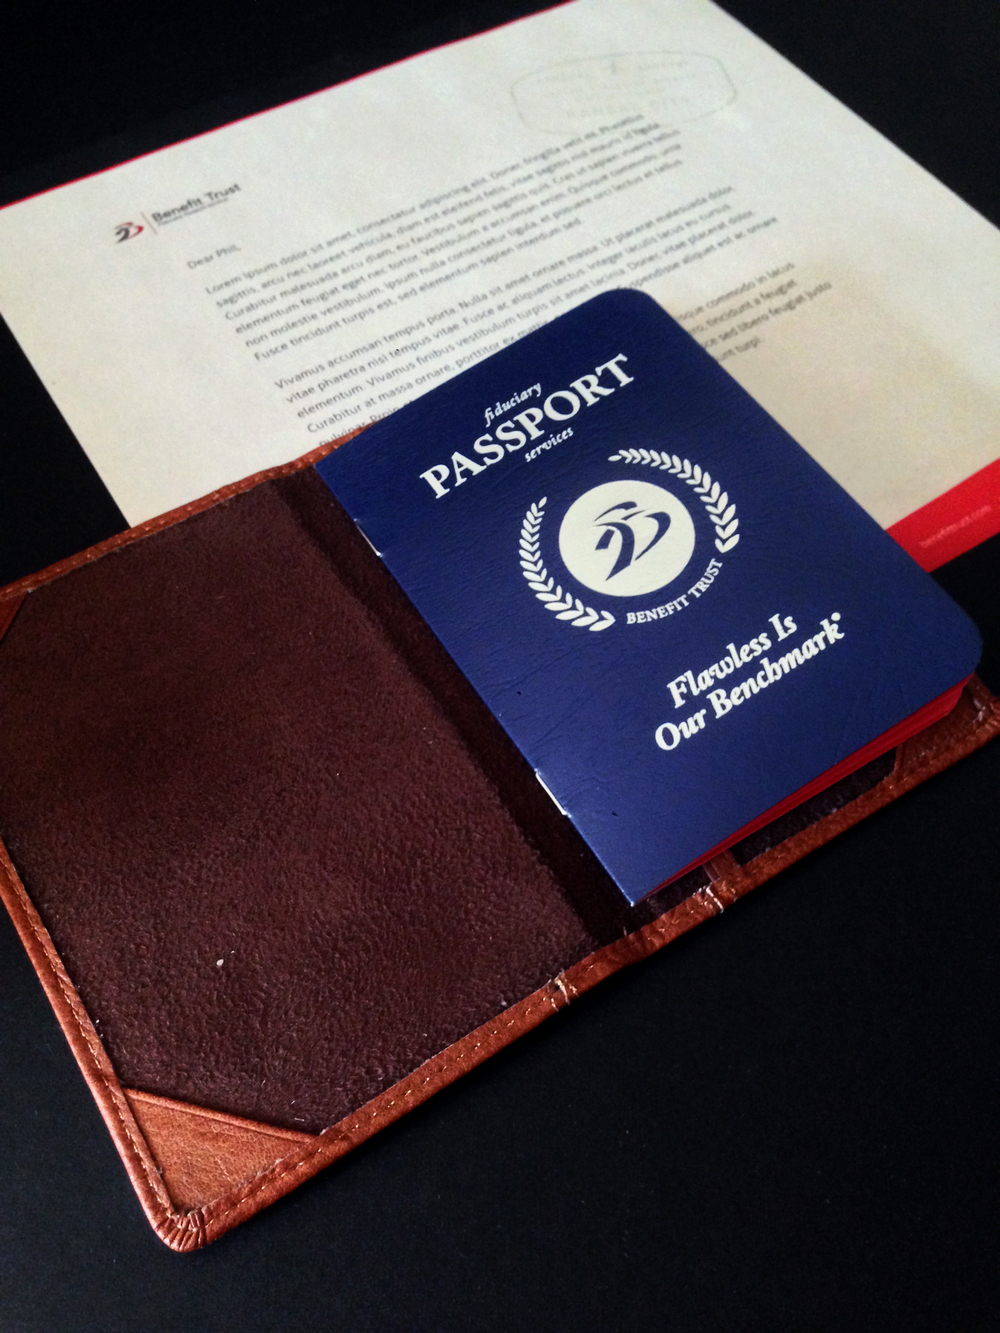 BenefitTrust_passport-book.jpg